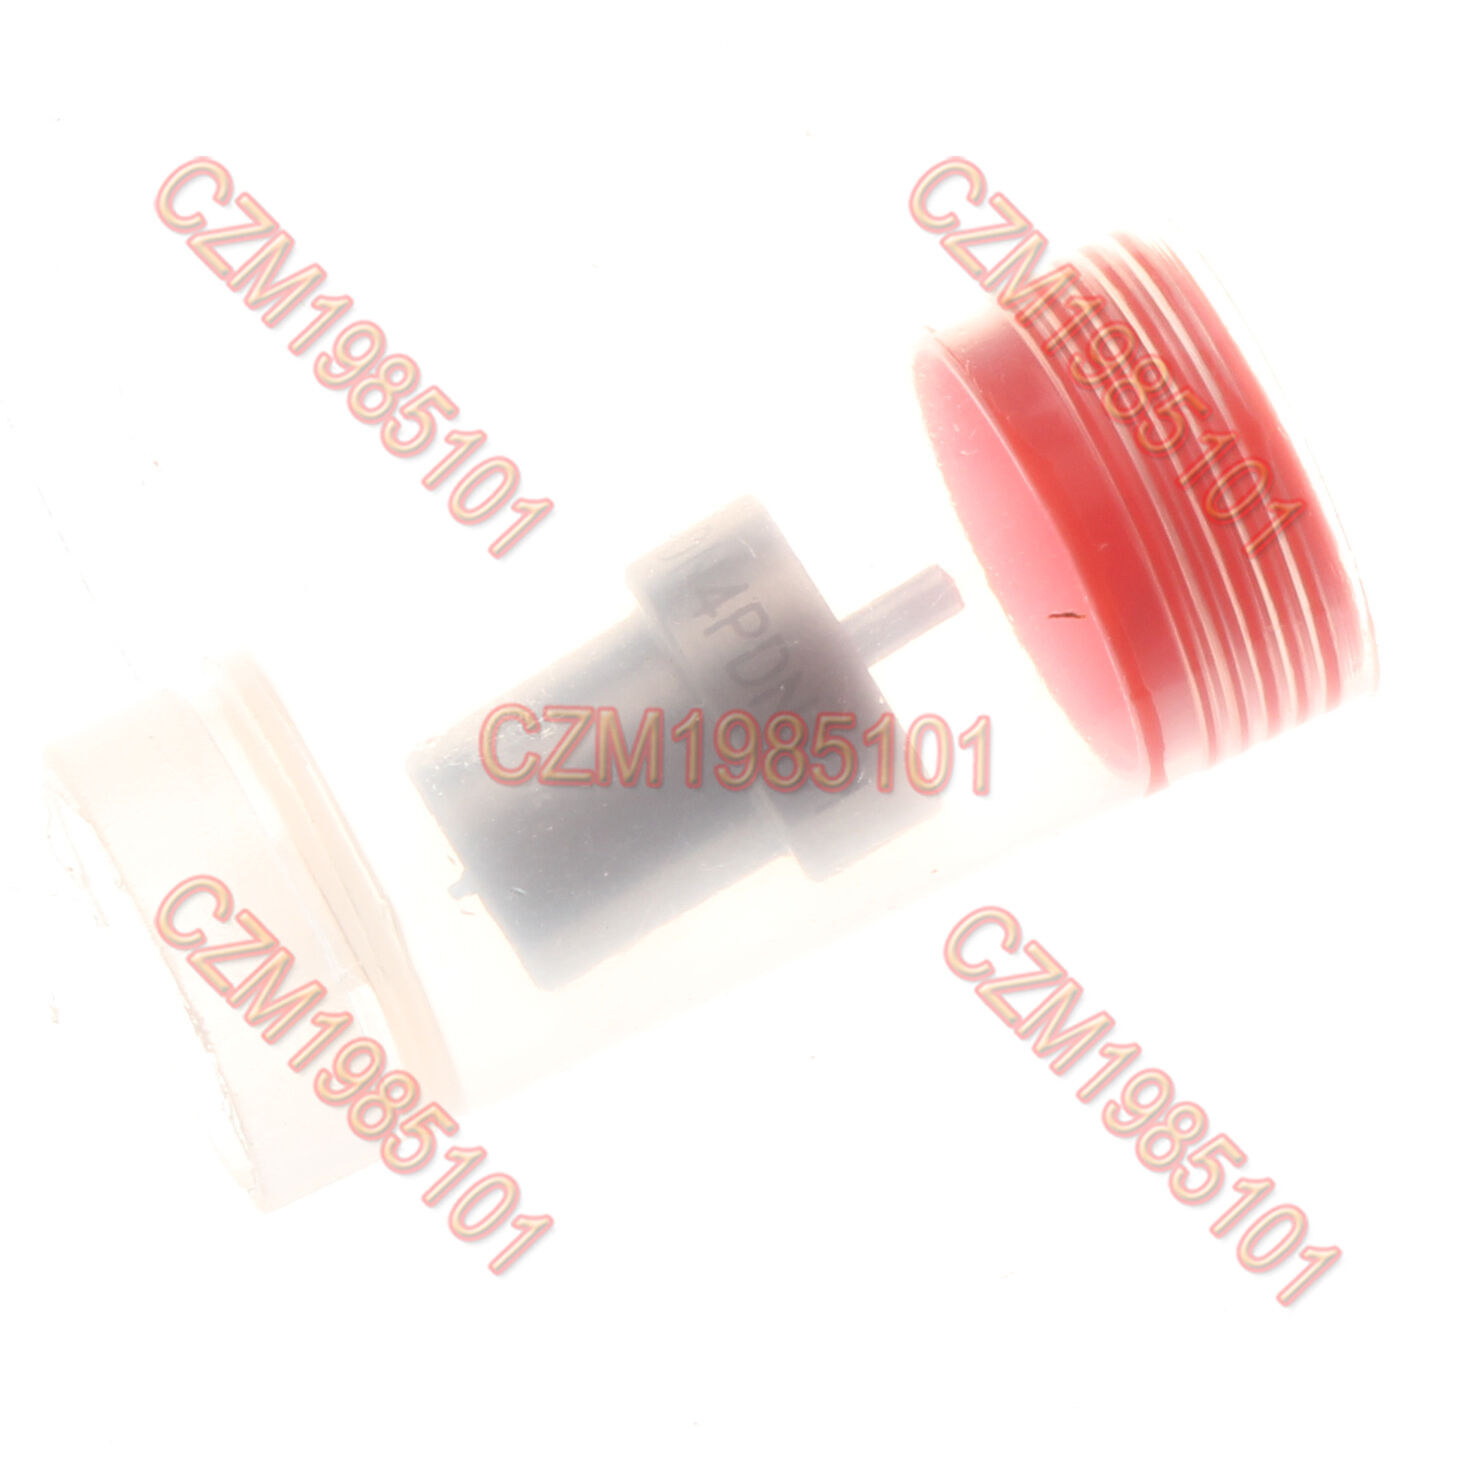 One Piece Fuel Injector Nozzle 105007-1010 DN4PDN101 For Diesel ISUZU 4LE1 4LB1